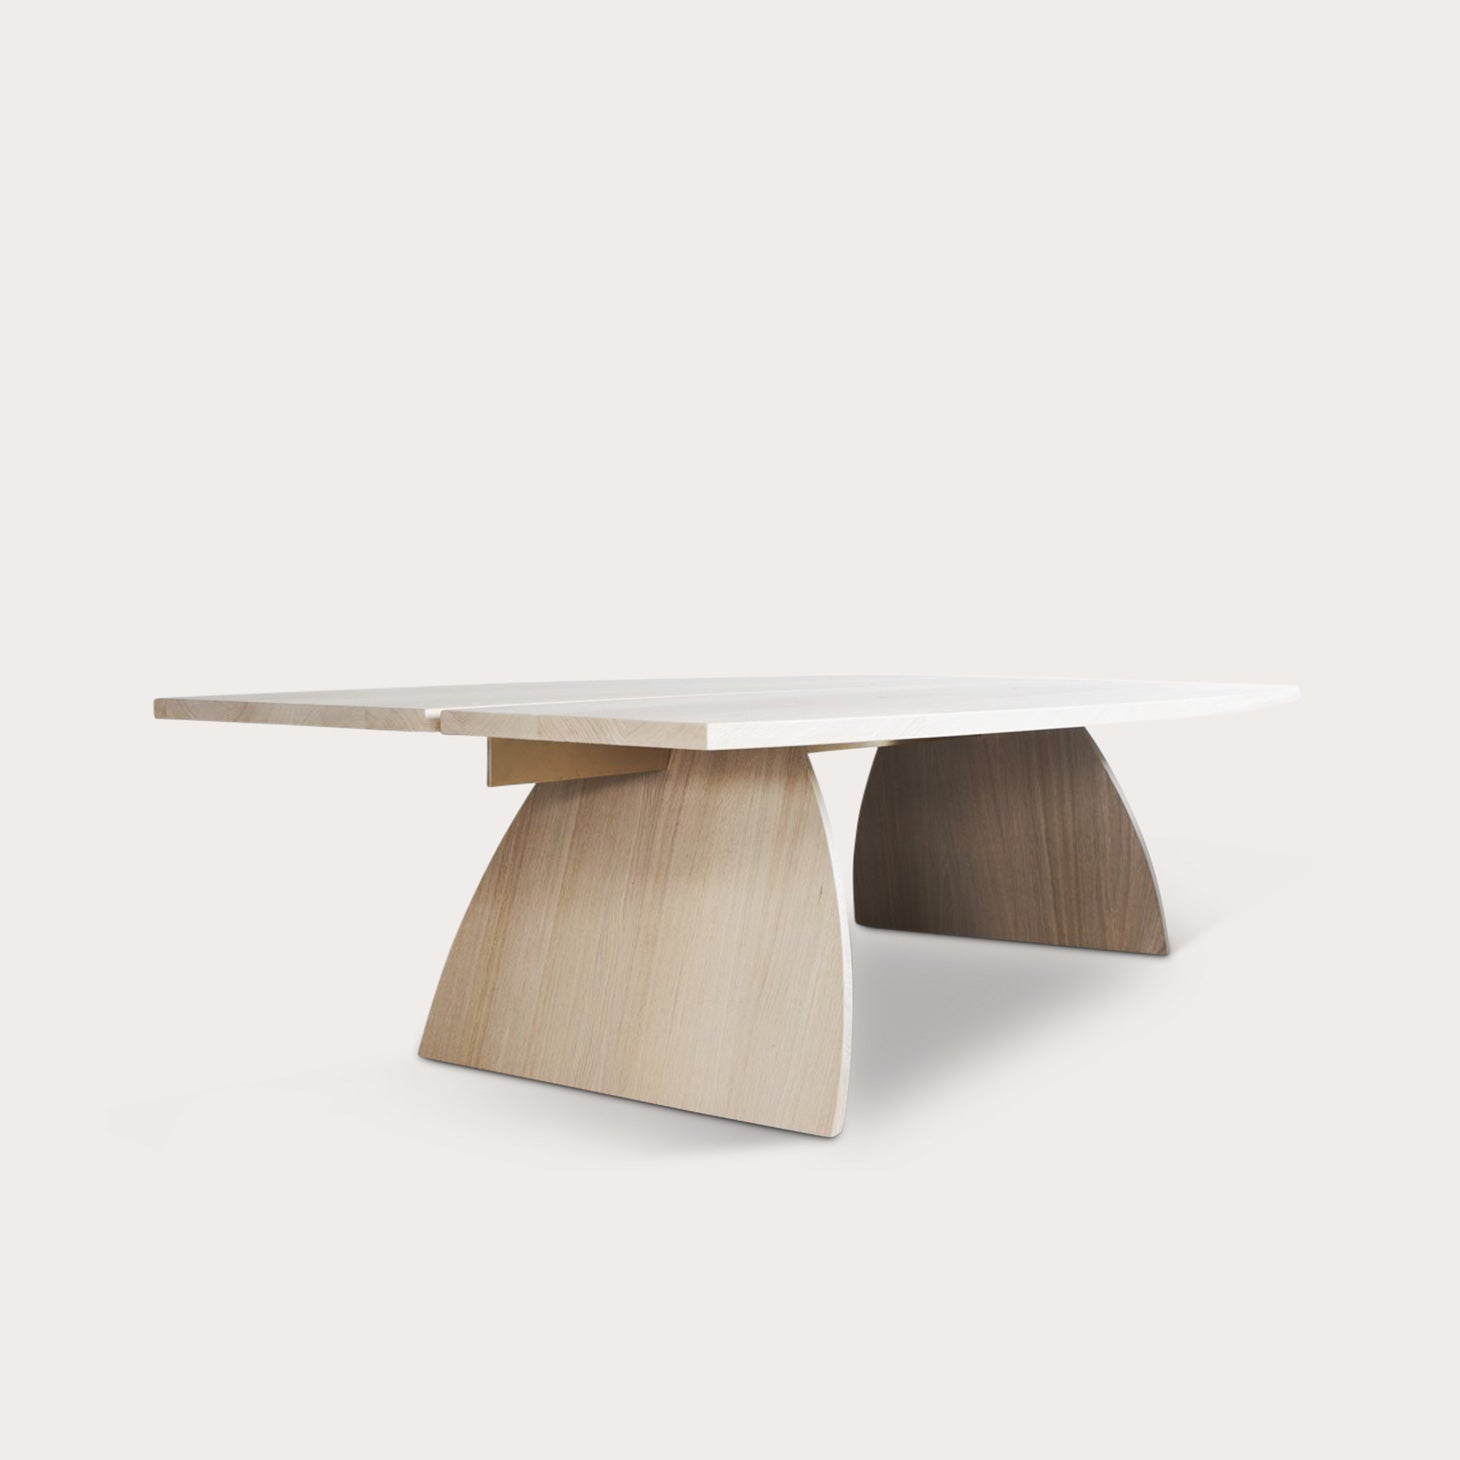 T-Elements T-Table Tables Andrea Tognon Designer Furniture Sku: 416-230-10257